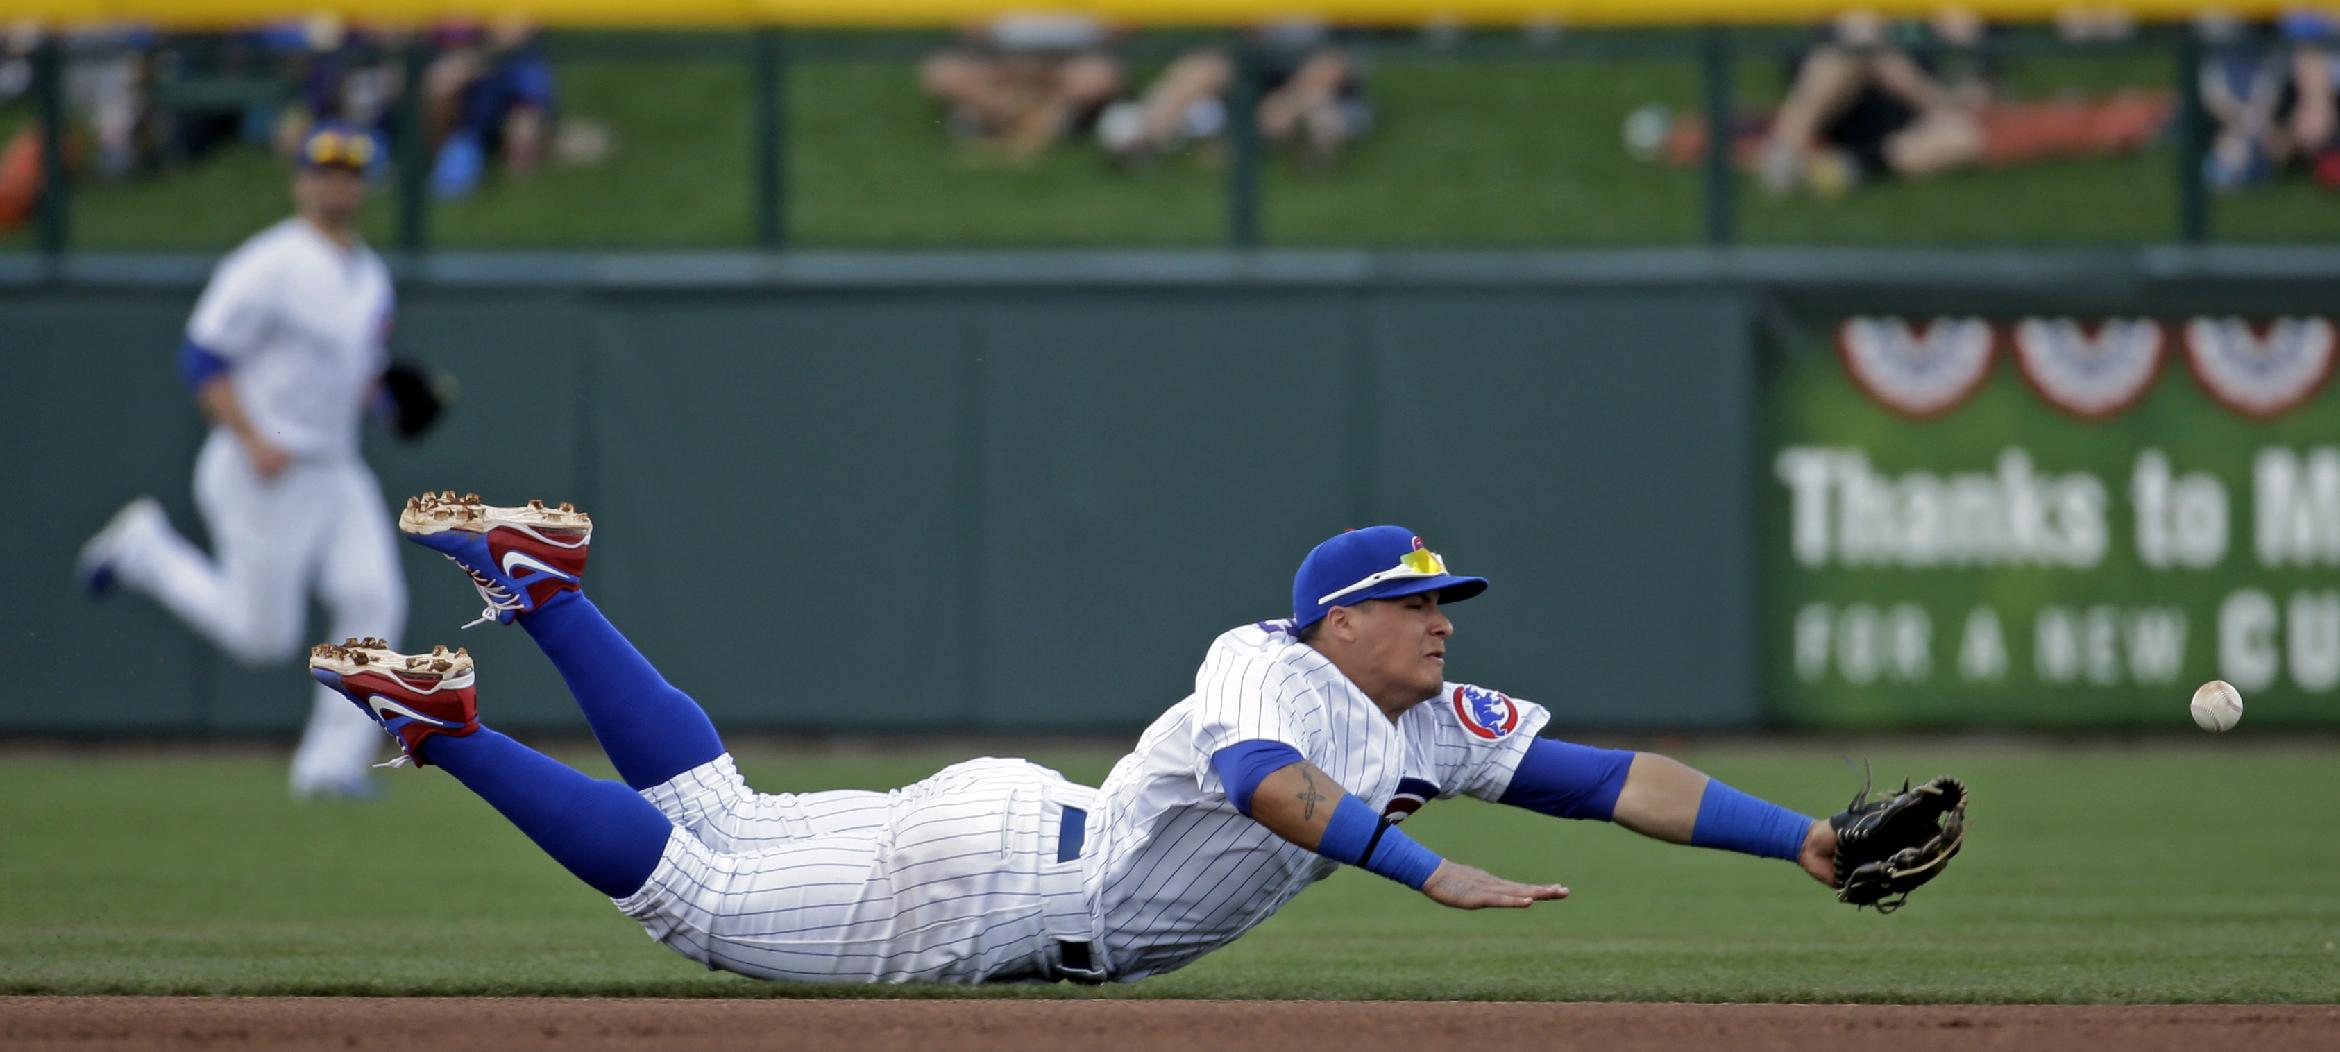 Chicago Cubs' Javier Baez can't come up with a ball hit by Kansas City Royals' Lorenzo Cain during the fourth inning of an exhibition spring training baseball game, Sunday, March 2, 2014, in Mesa, Ariz